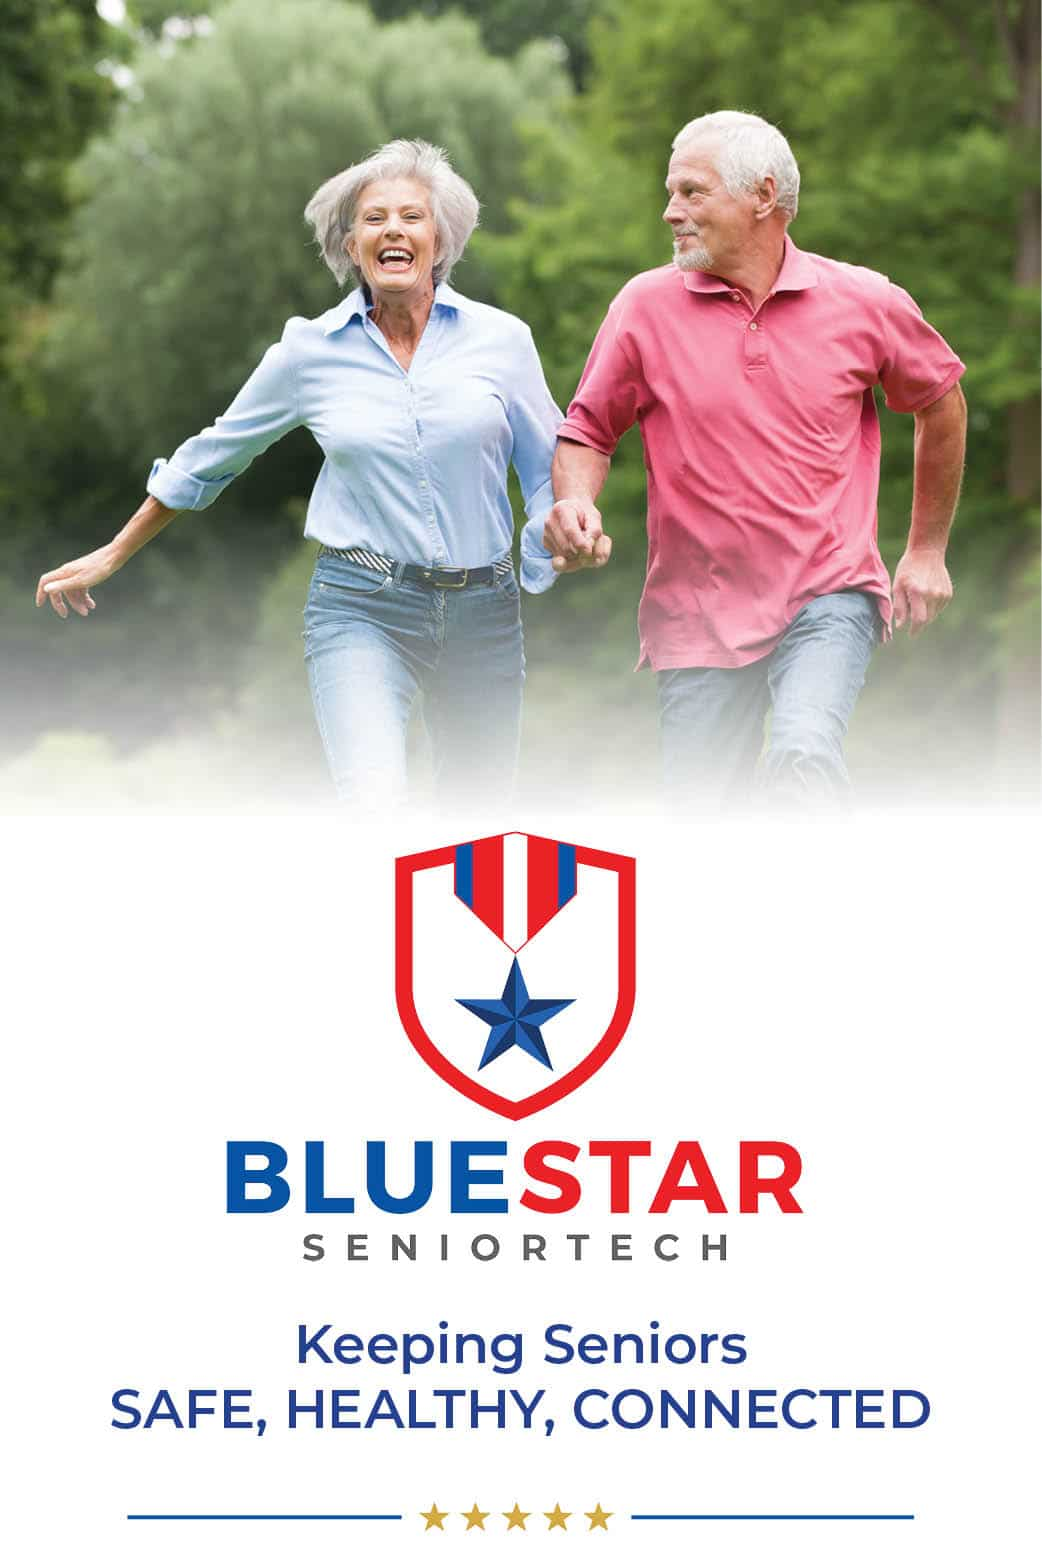 bluestar seniortech catalog - connection technology